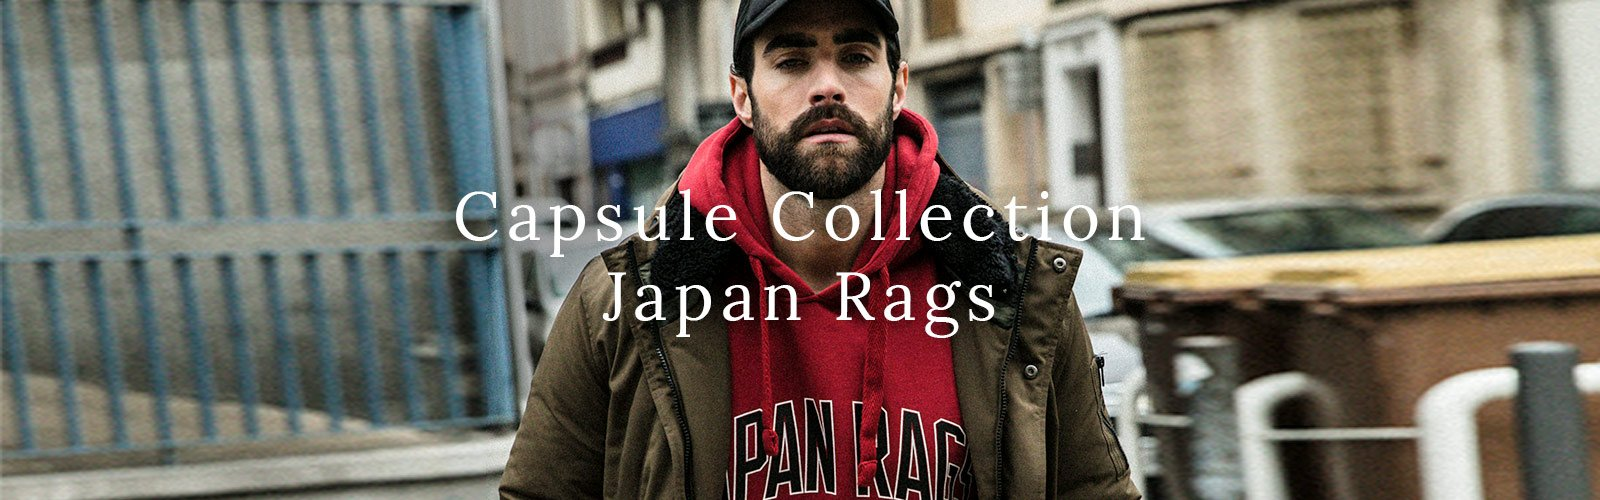 Capsule Collection Japan Rags